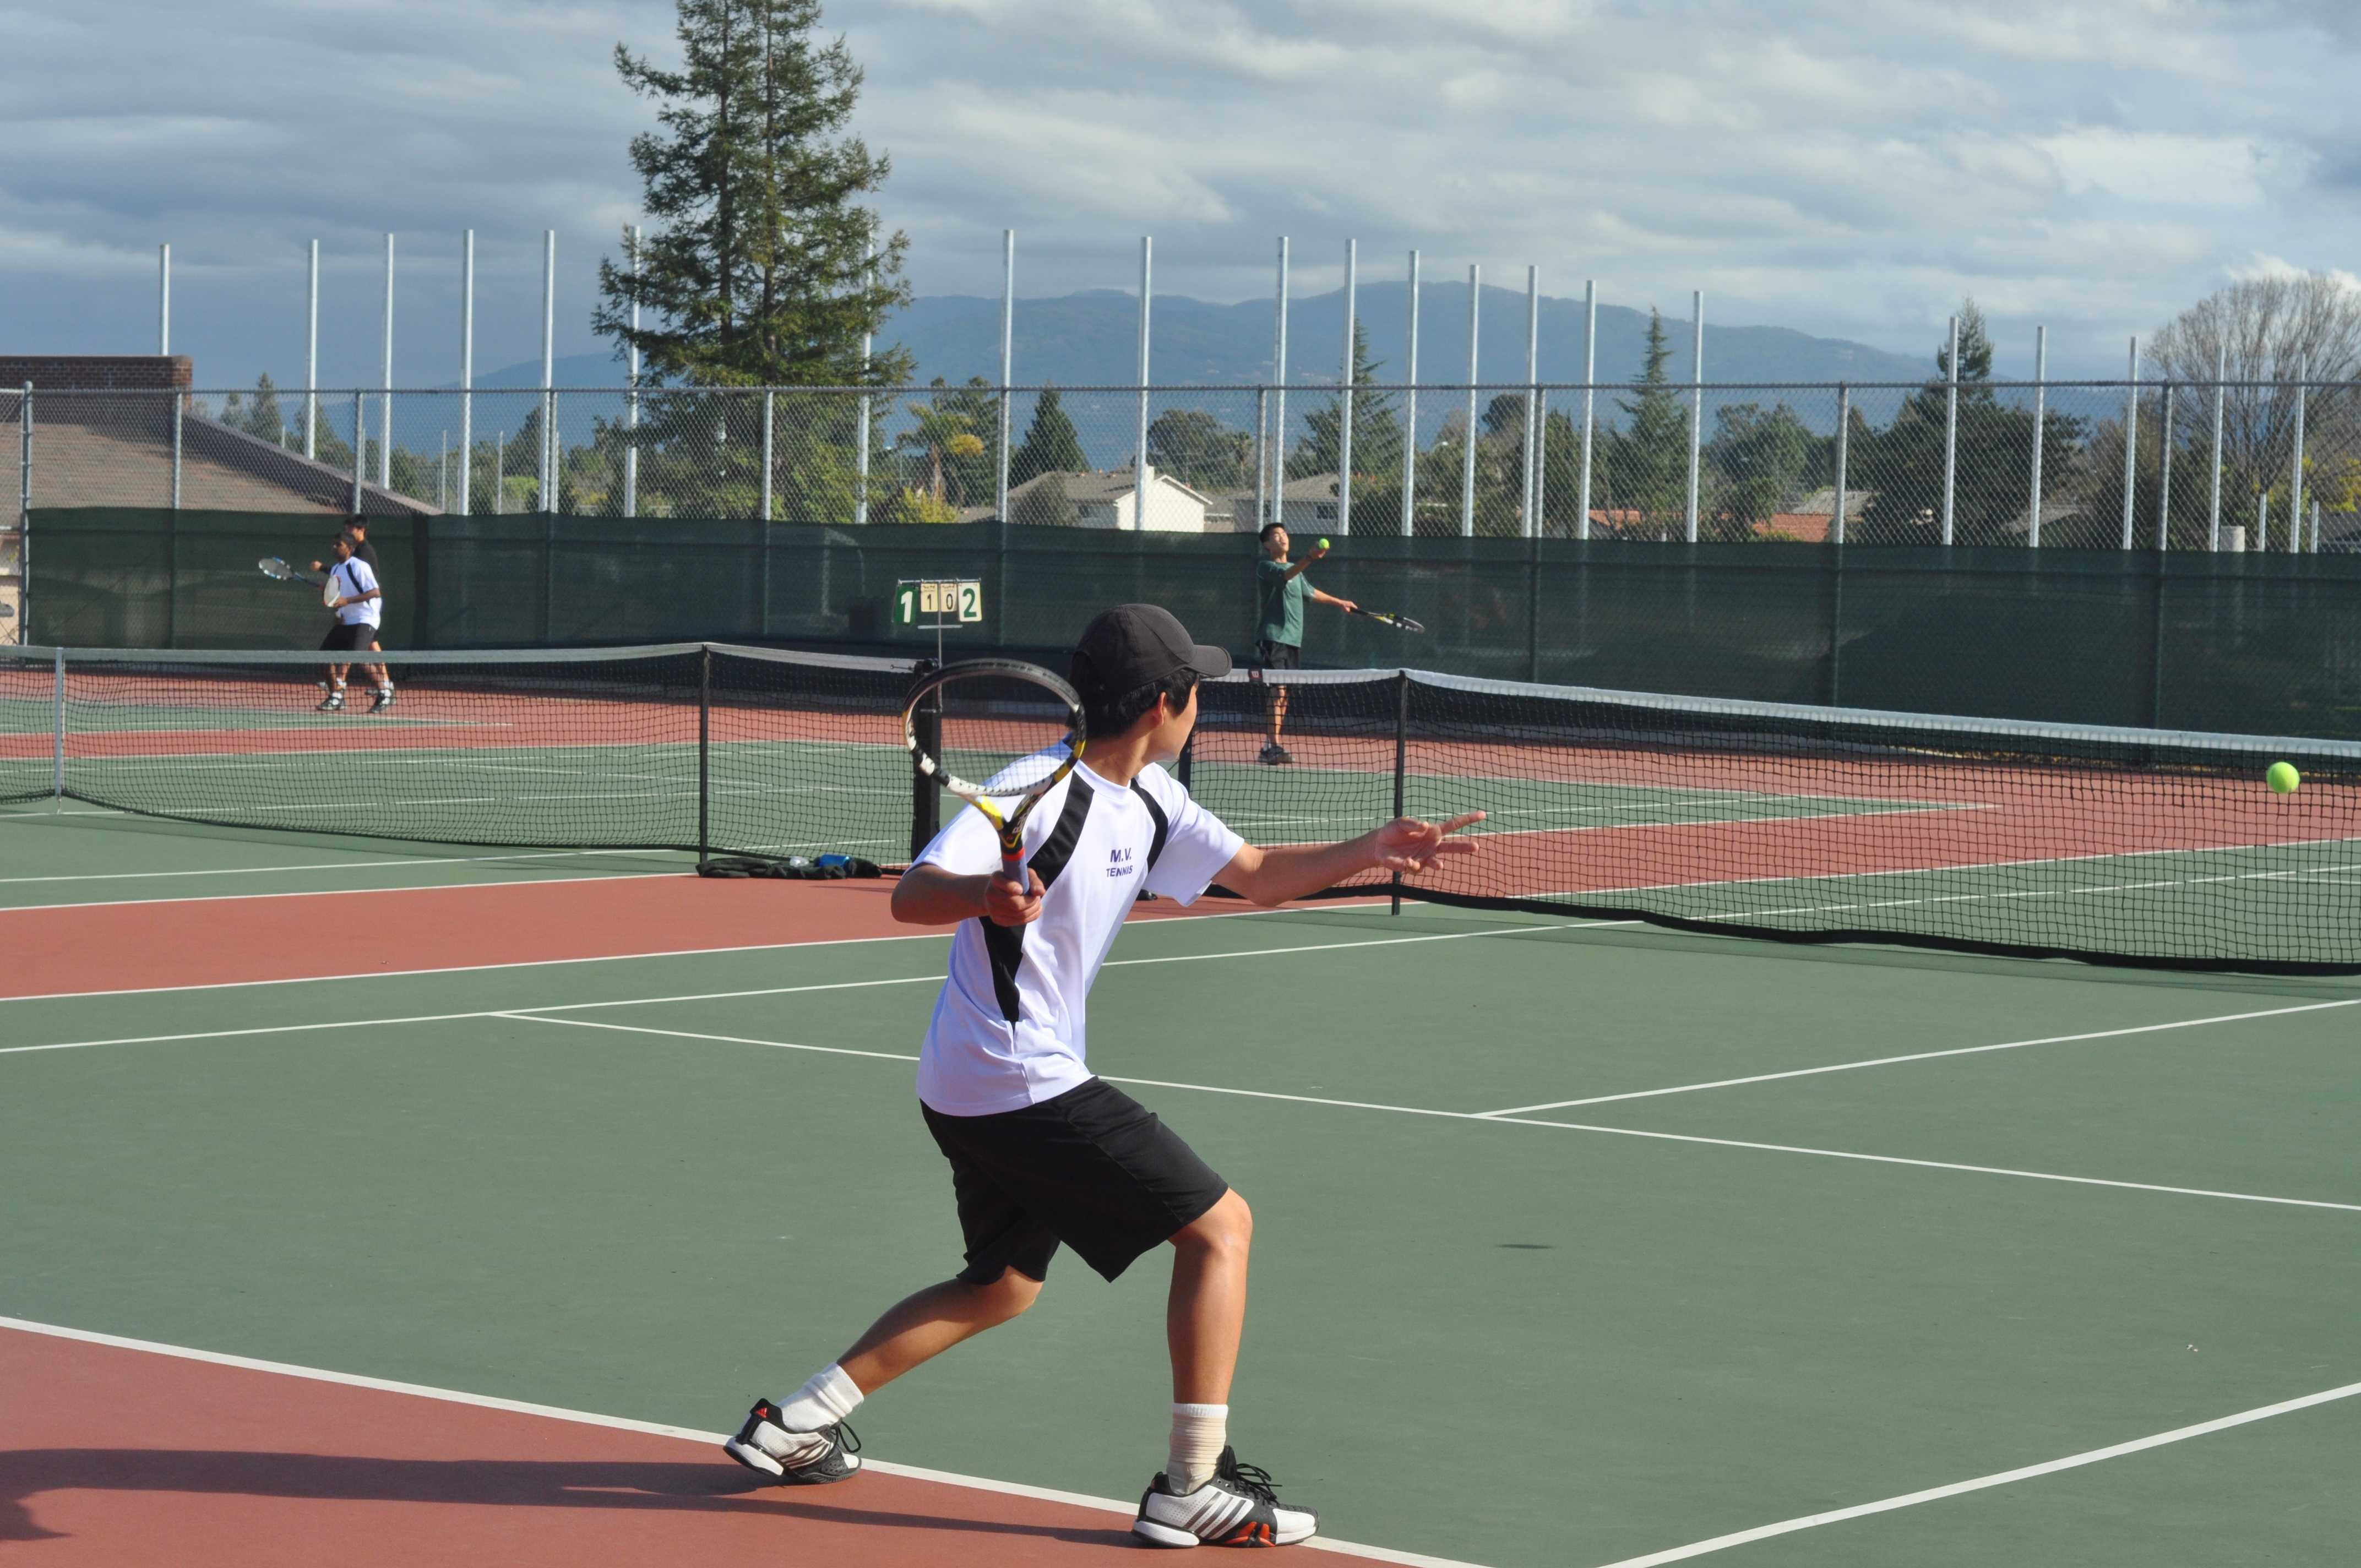 Freshman Jonathan Li readies a backhand return. Li went on to win his games 6-3, 6-1 and contributed to the team score of 6-1. Photo by Kevin Guo.